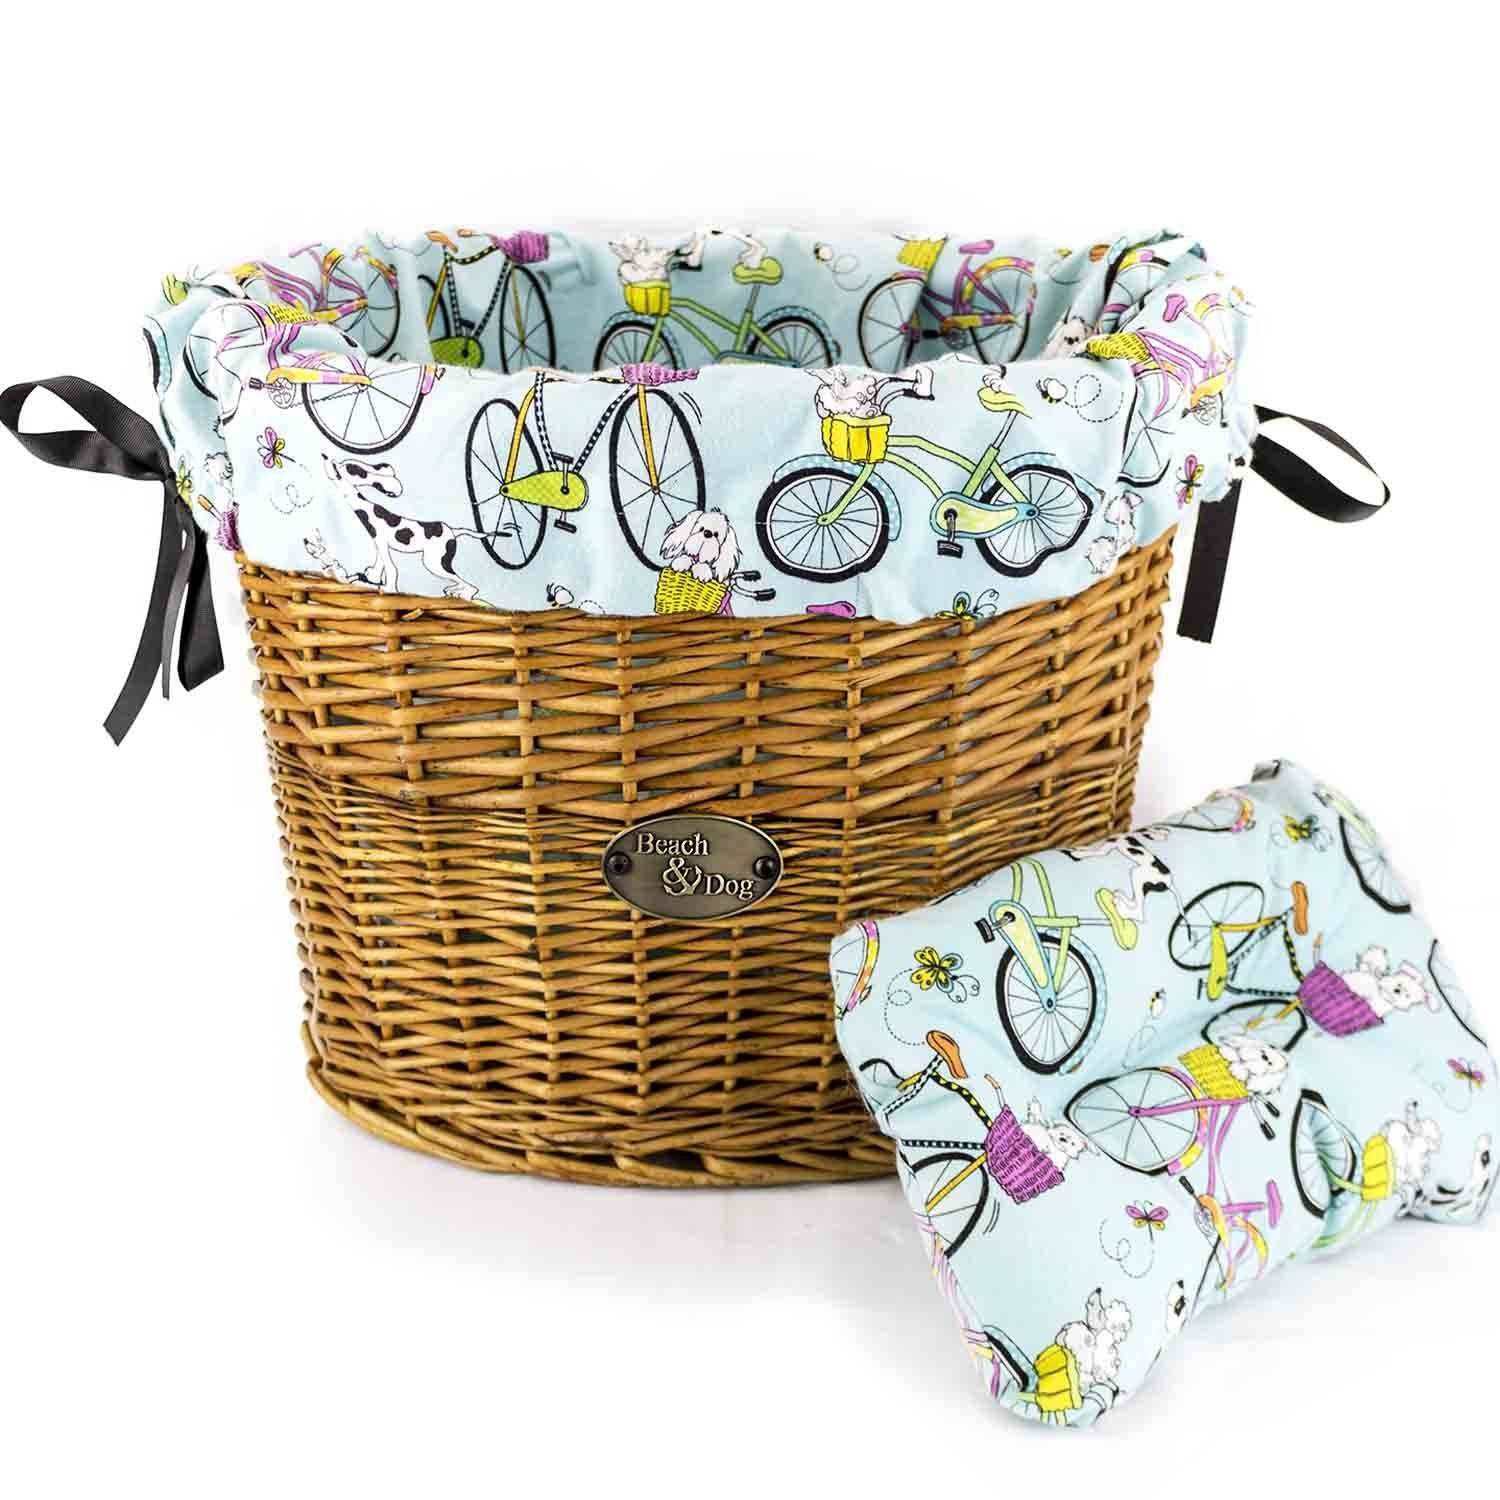 Dogs in Baskets Basket Liner -  Beach & Dog Co